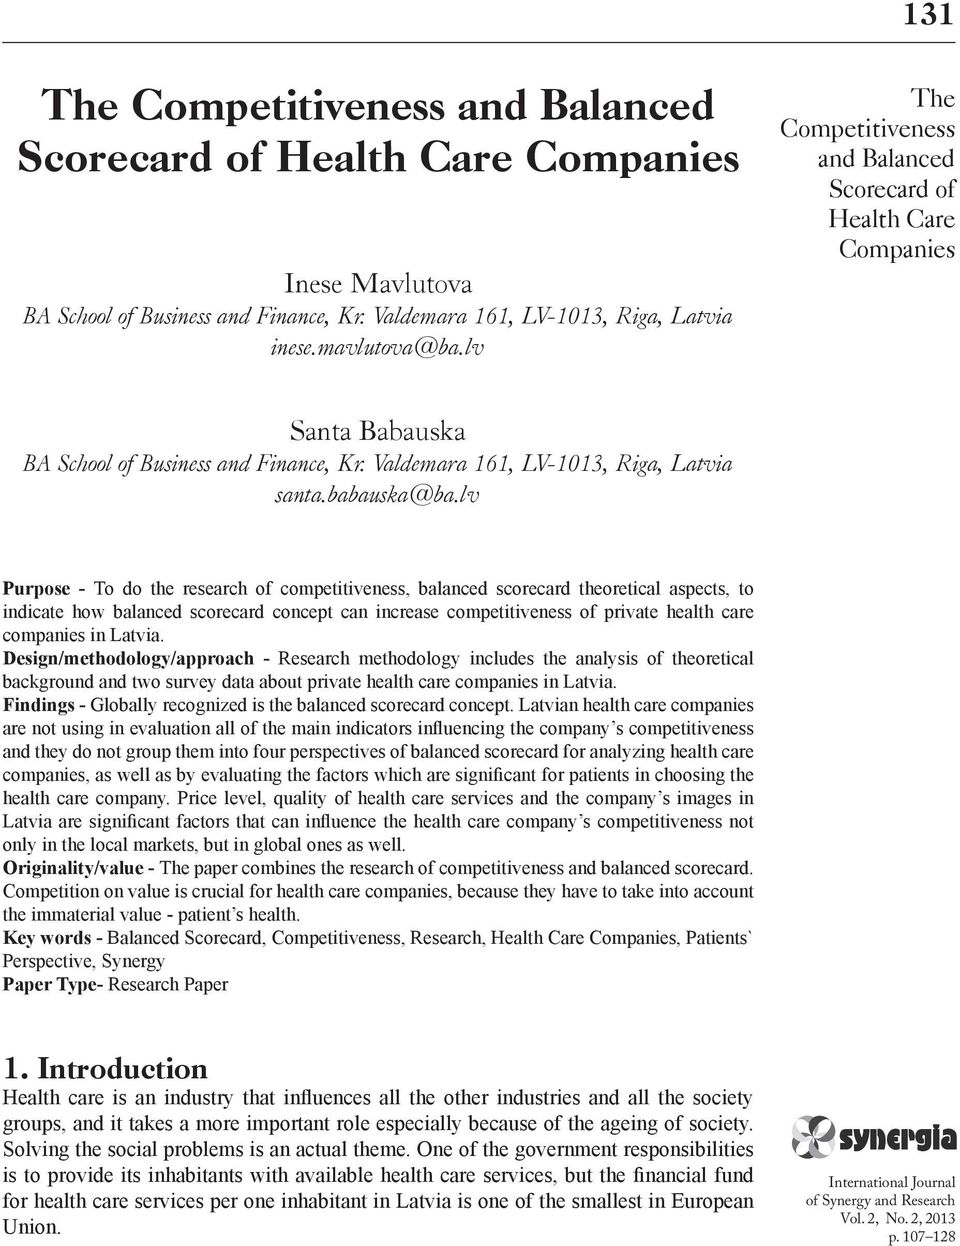 lv Purpose - To do the research of competitiveness, balanced scorecard theoretical aspects, to indicate how balanced scorecard concept can increase competitiveness of private health care companies in